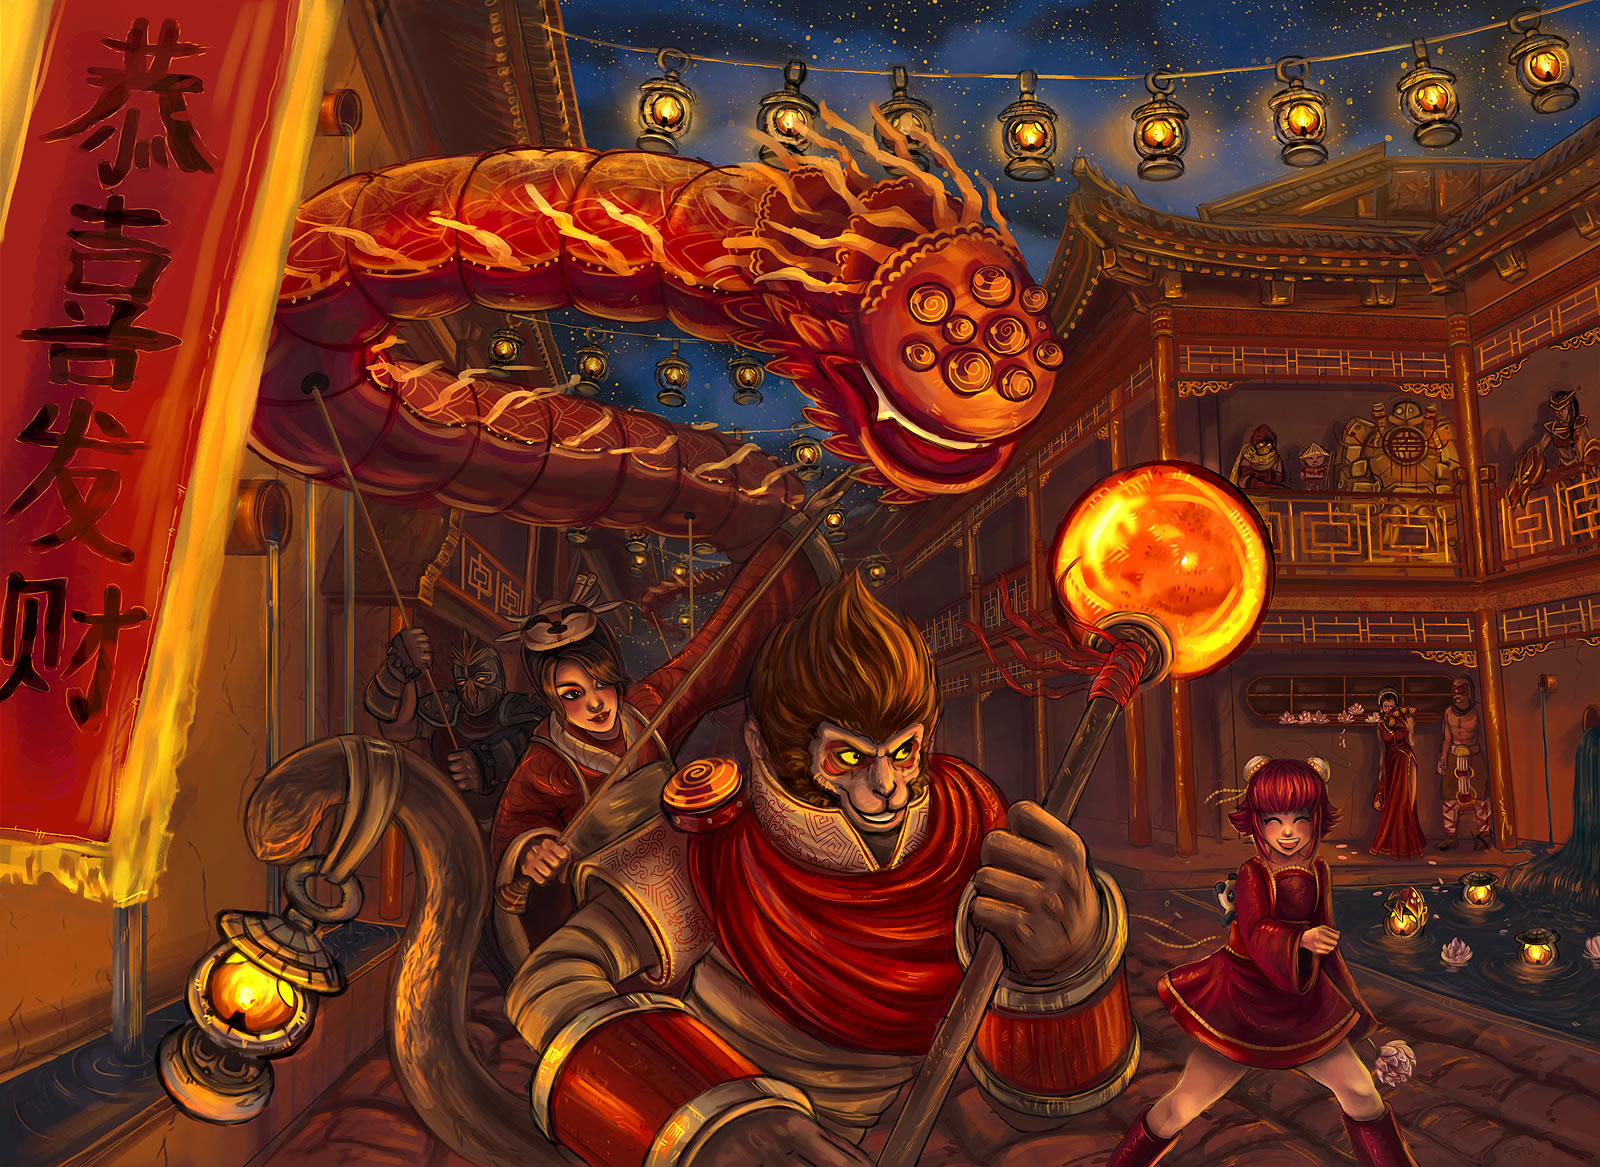 Cute Teemo Wallpaper Art Of Revelry Contest Wukong League Of Legends Wallpapers